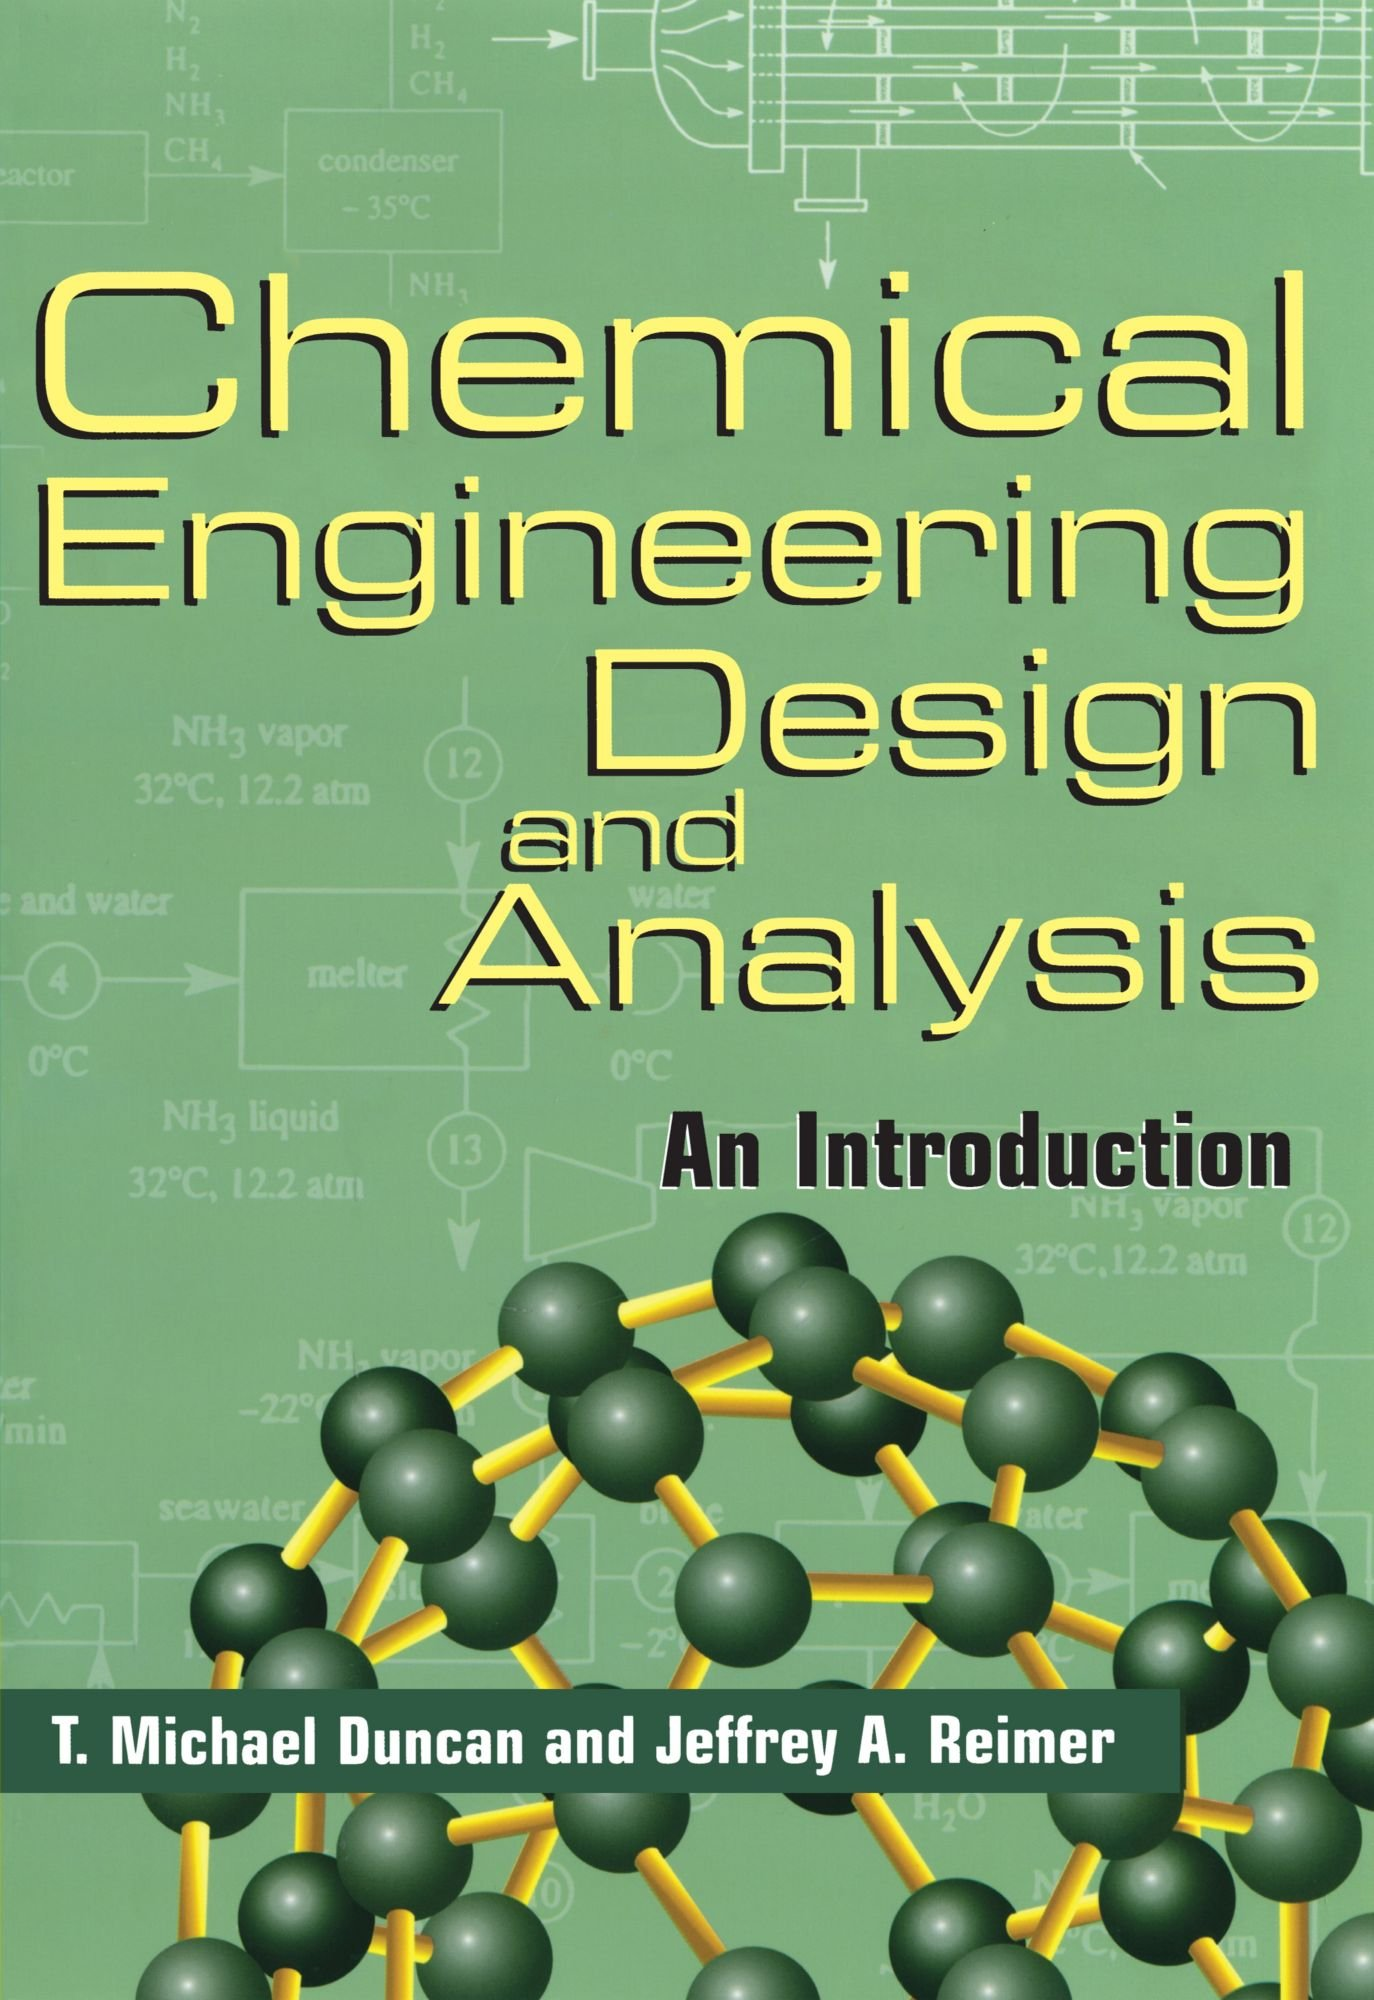 Buy Chemical Engineering Design And Analysis An Introduction Cambridge Series In Chemical Engineering Book Online At Low Prices In India Chemical Engineering Design And Analysis An Introduction Cambridge Series In Chemical